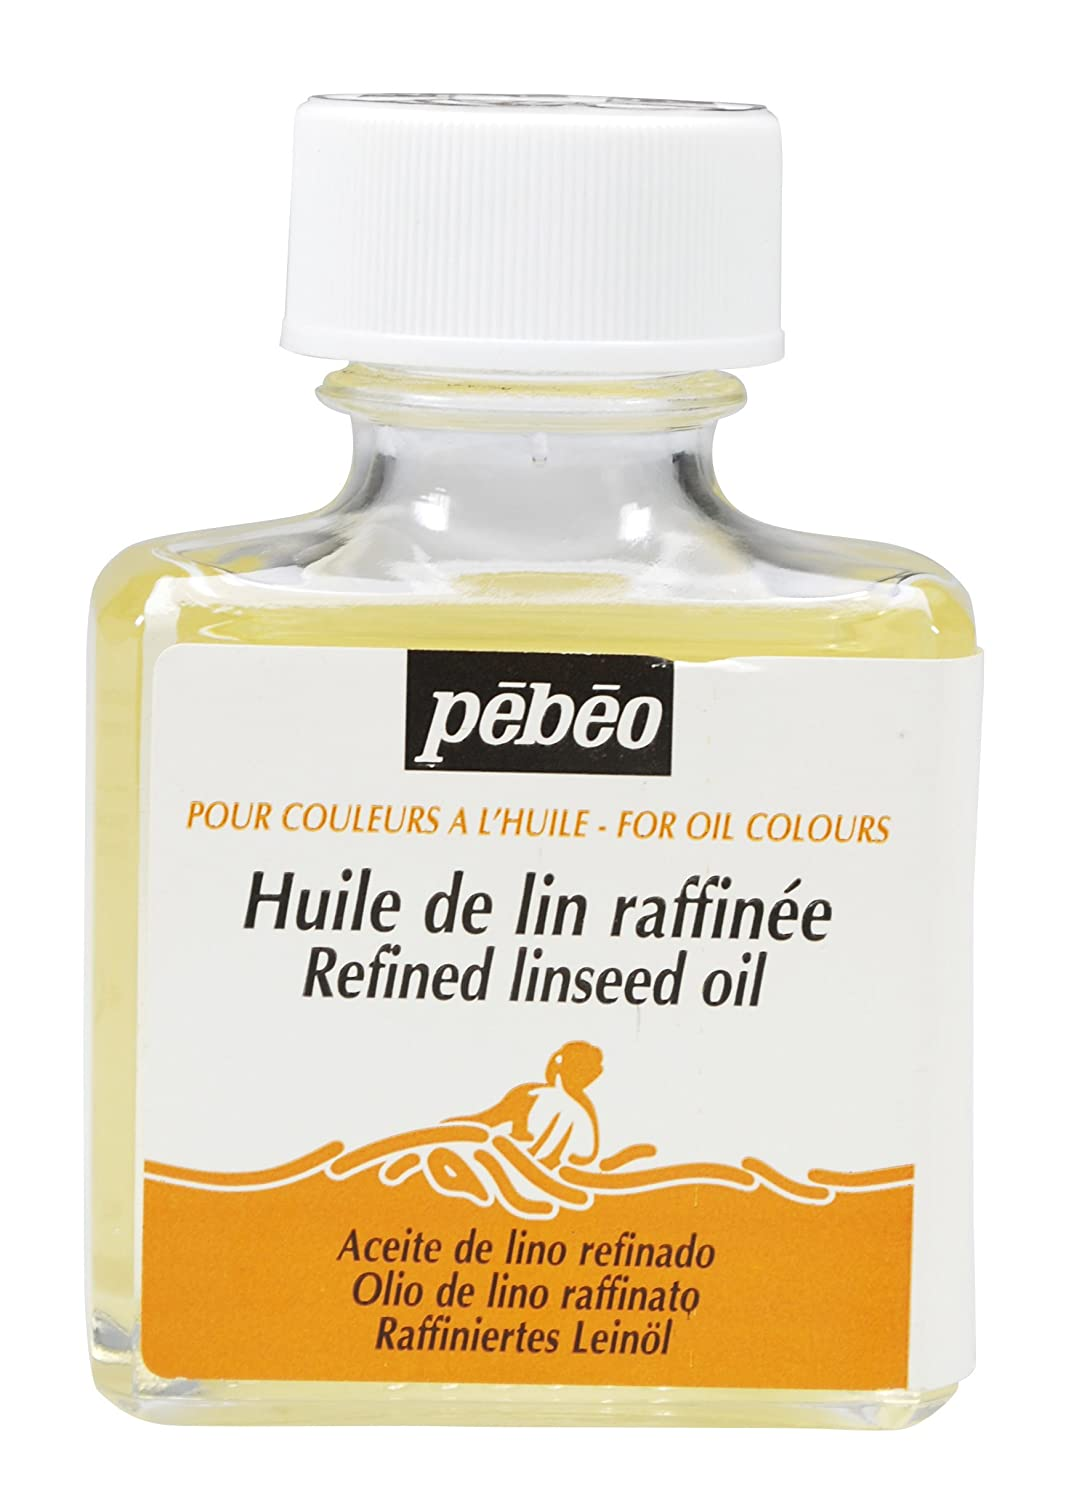 Pebeo Refined Linseed Oil Thinner for Paints, 75ml Bottle Pebeo Fabricant de Couleurs 650101